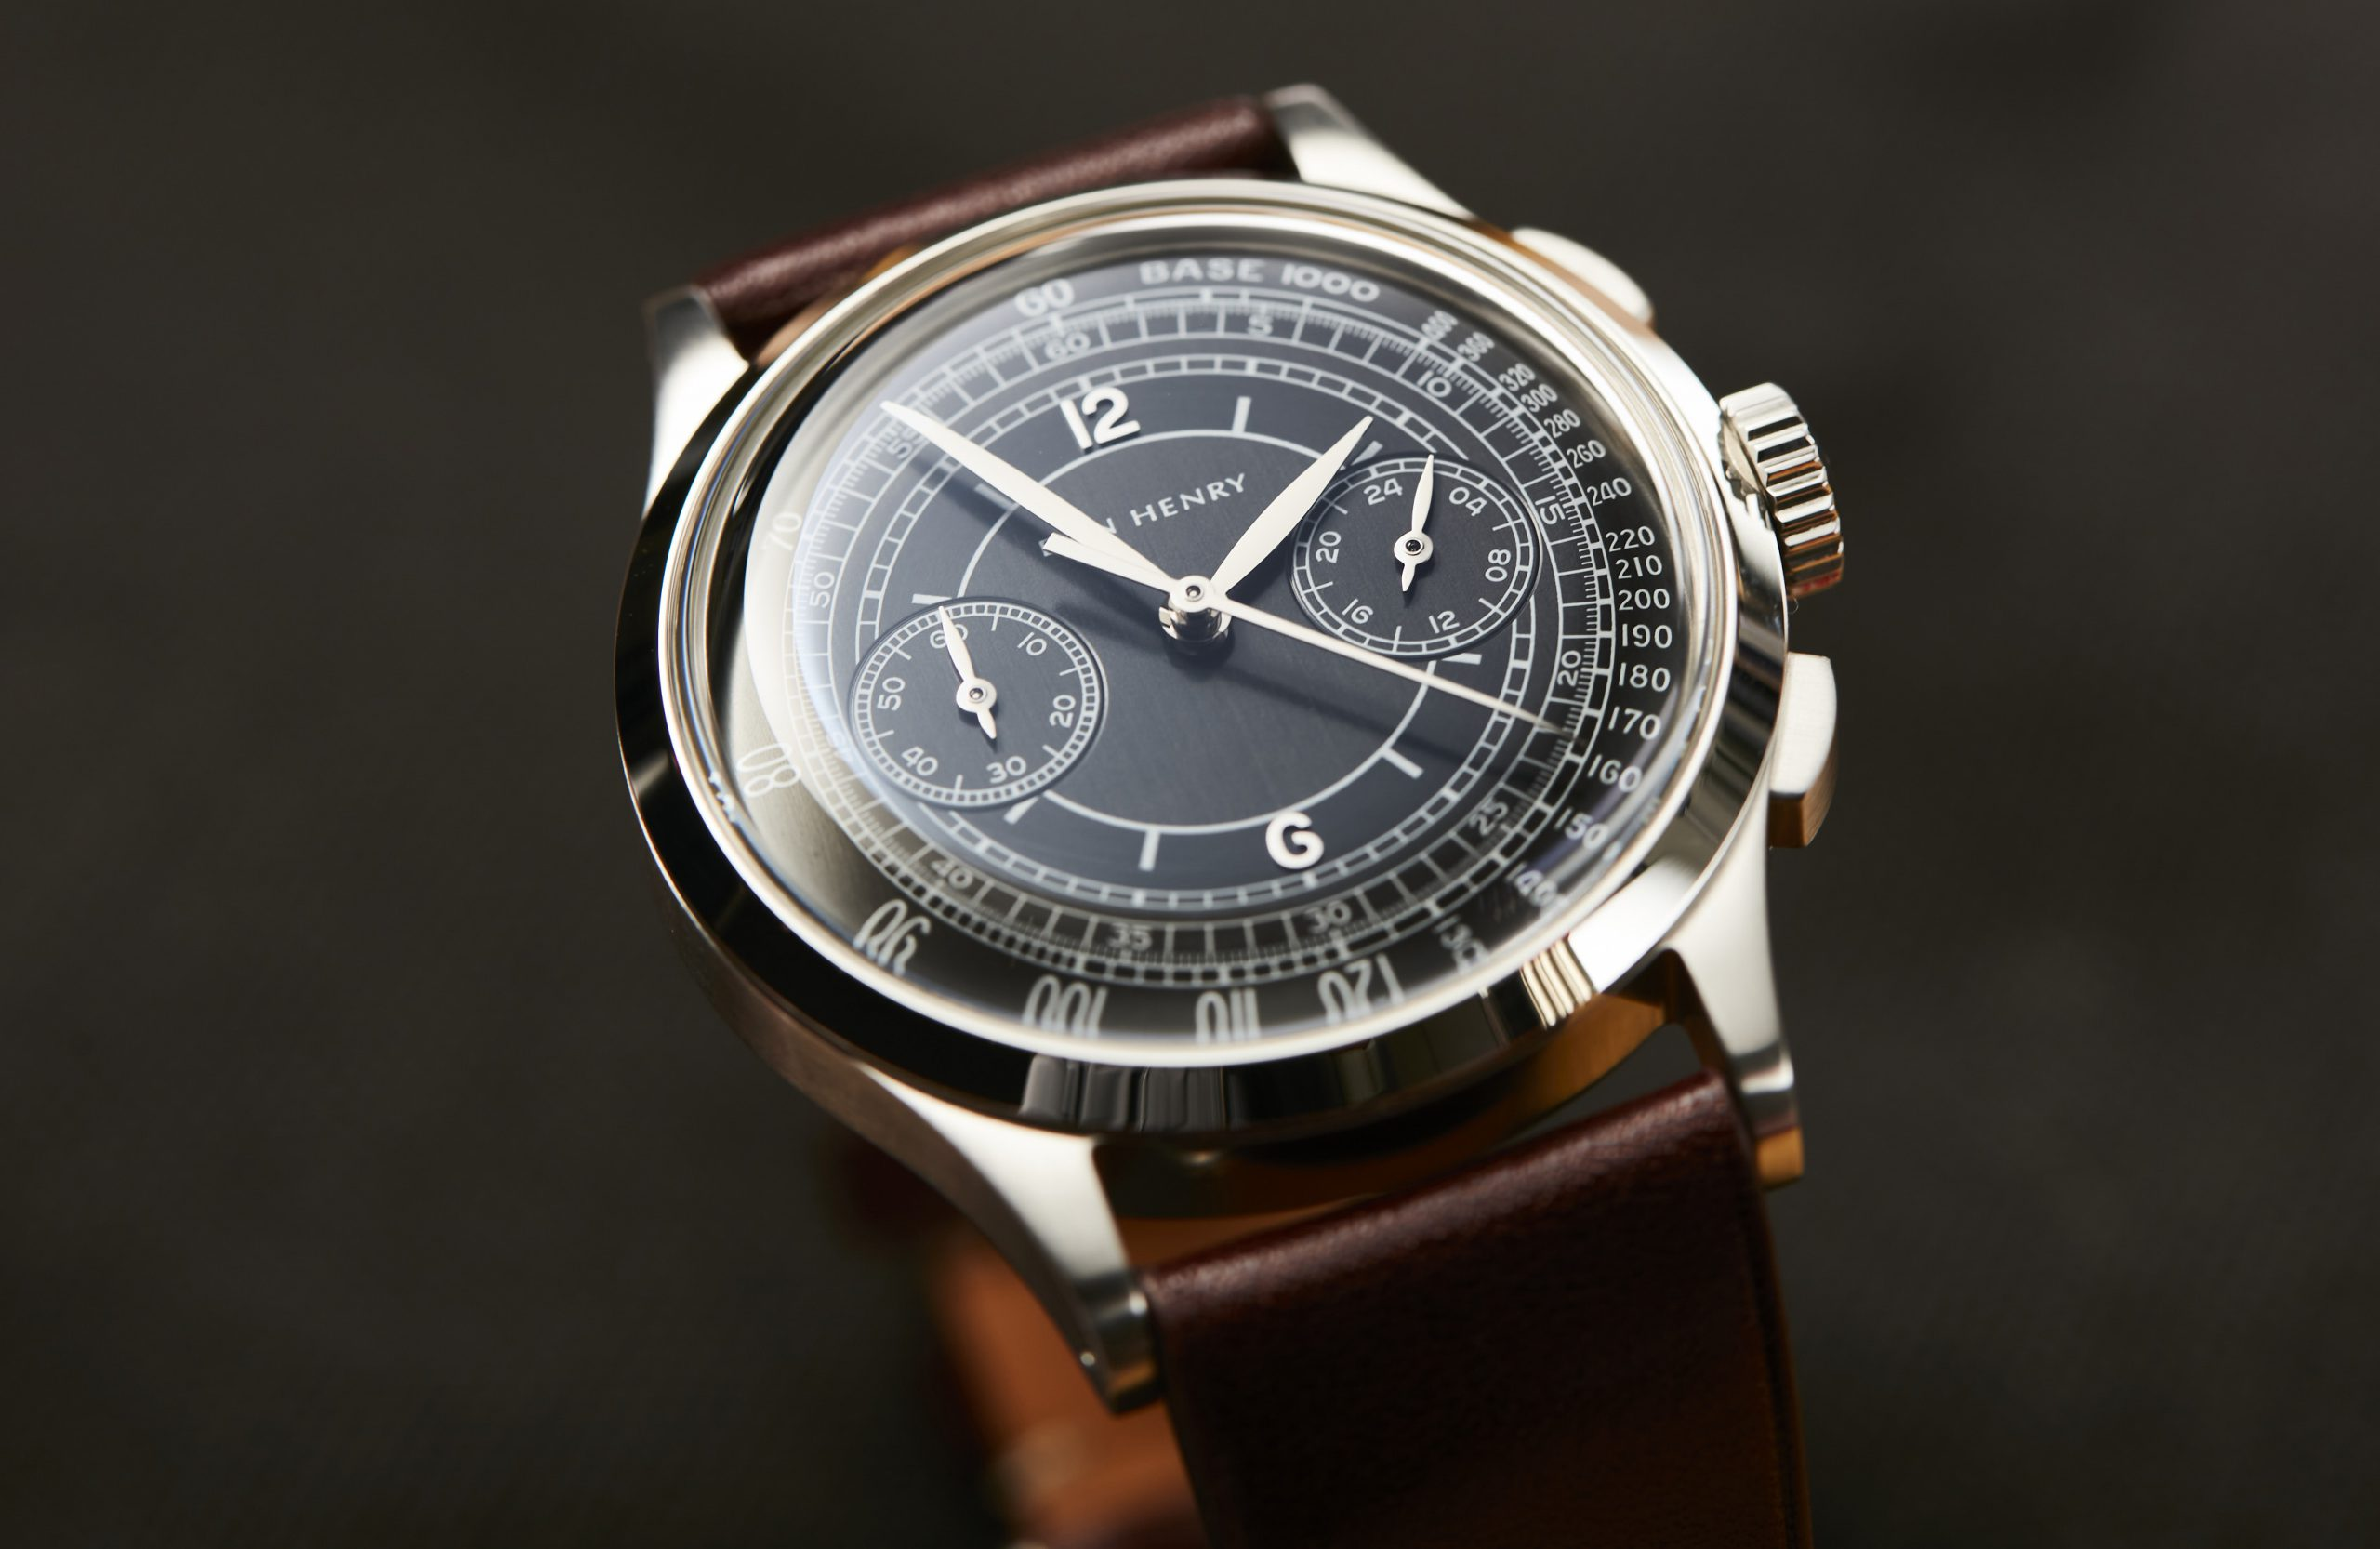 INTRODUCING: The Dan Henry 1937 might just be the best value vintage-styled chrono on the market